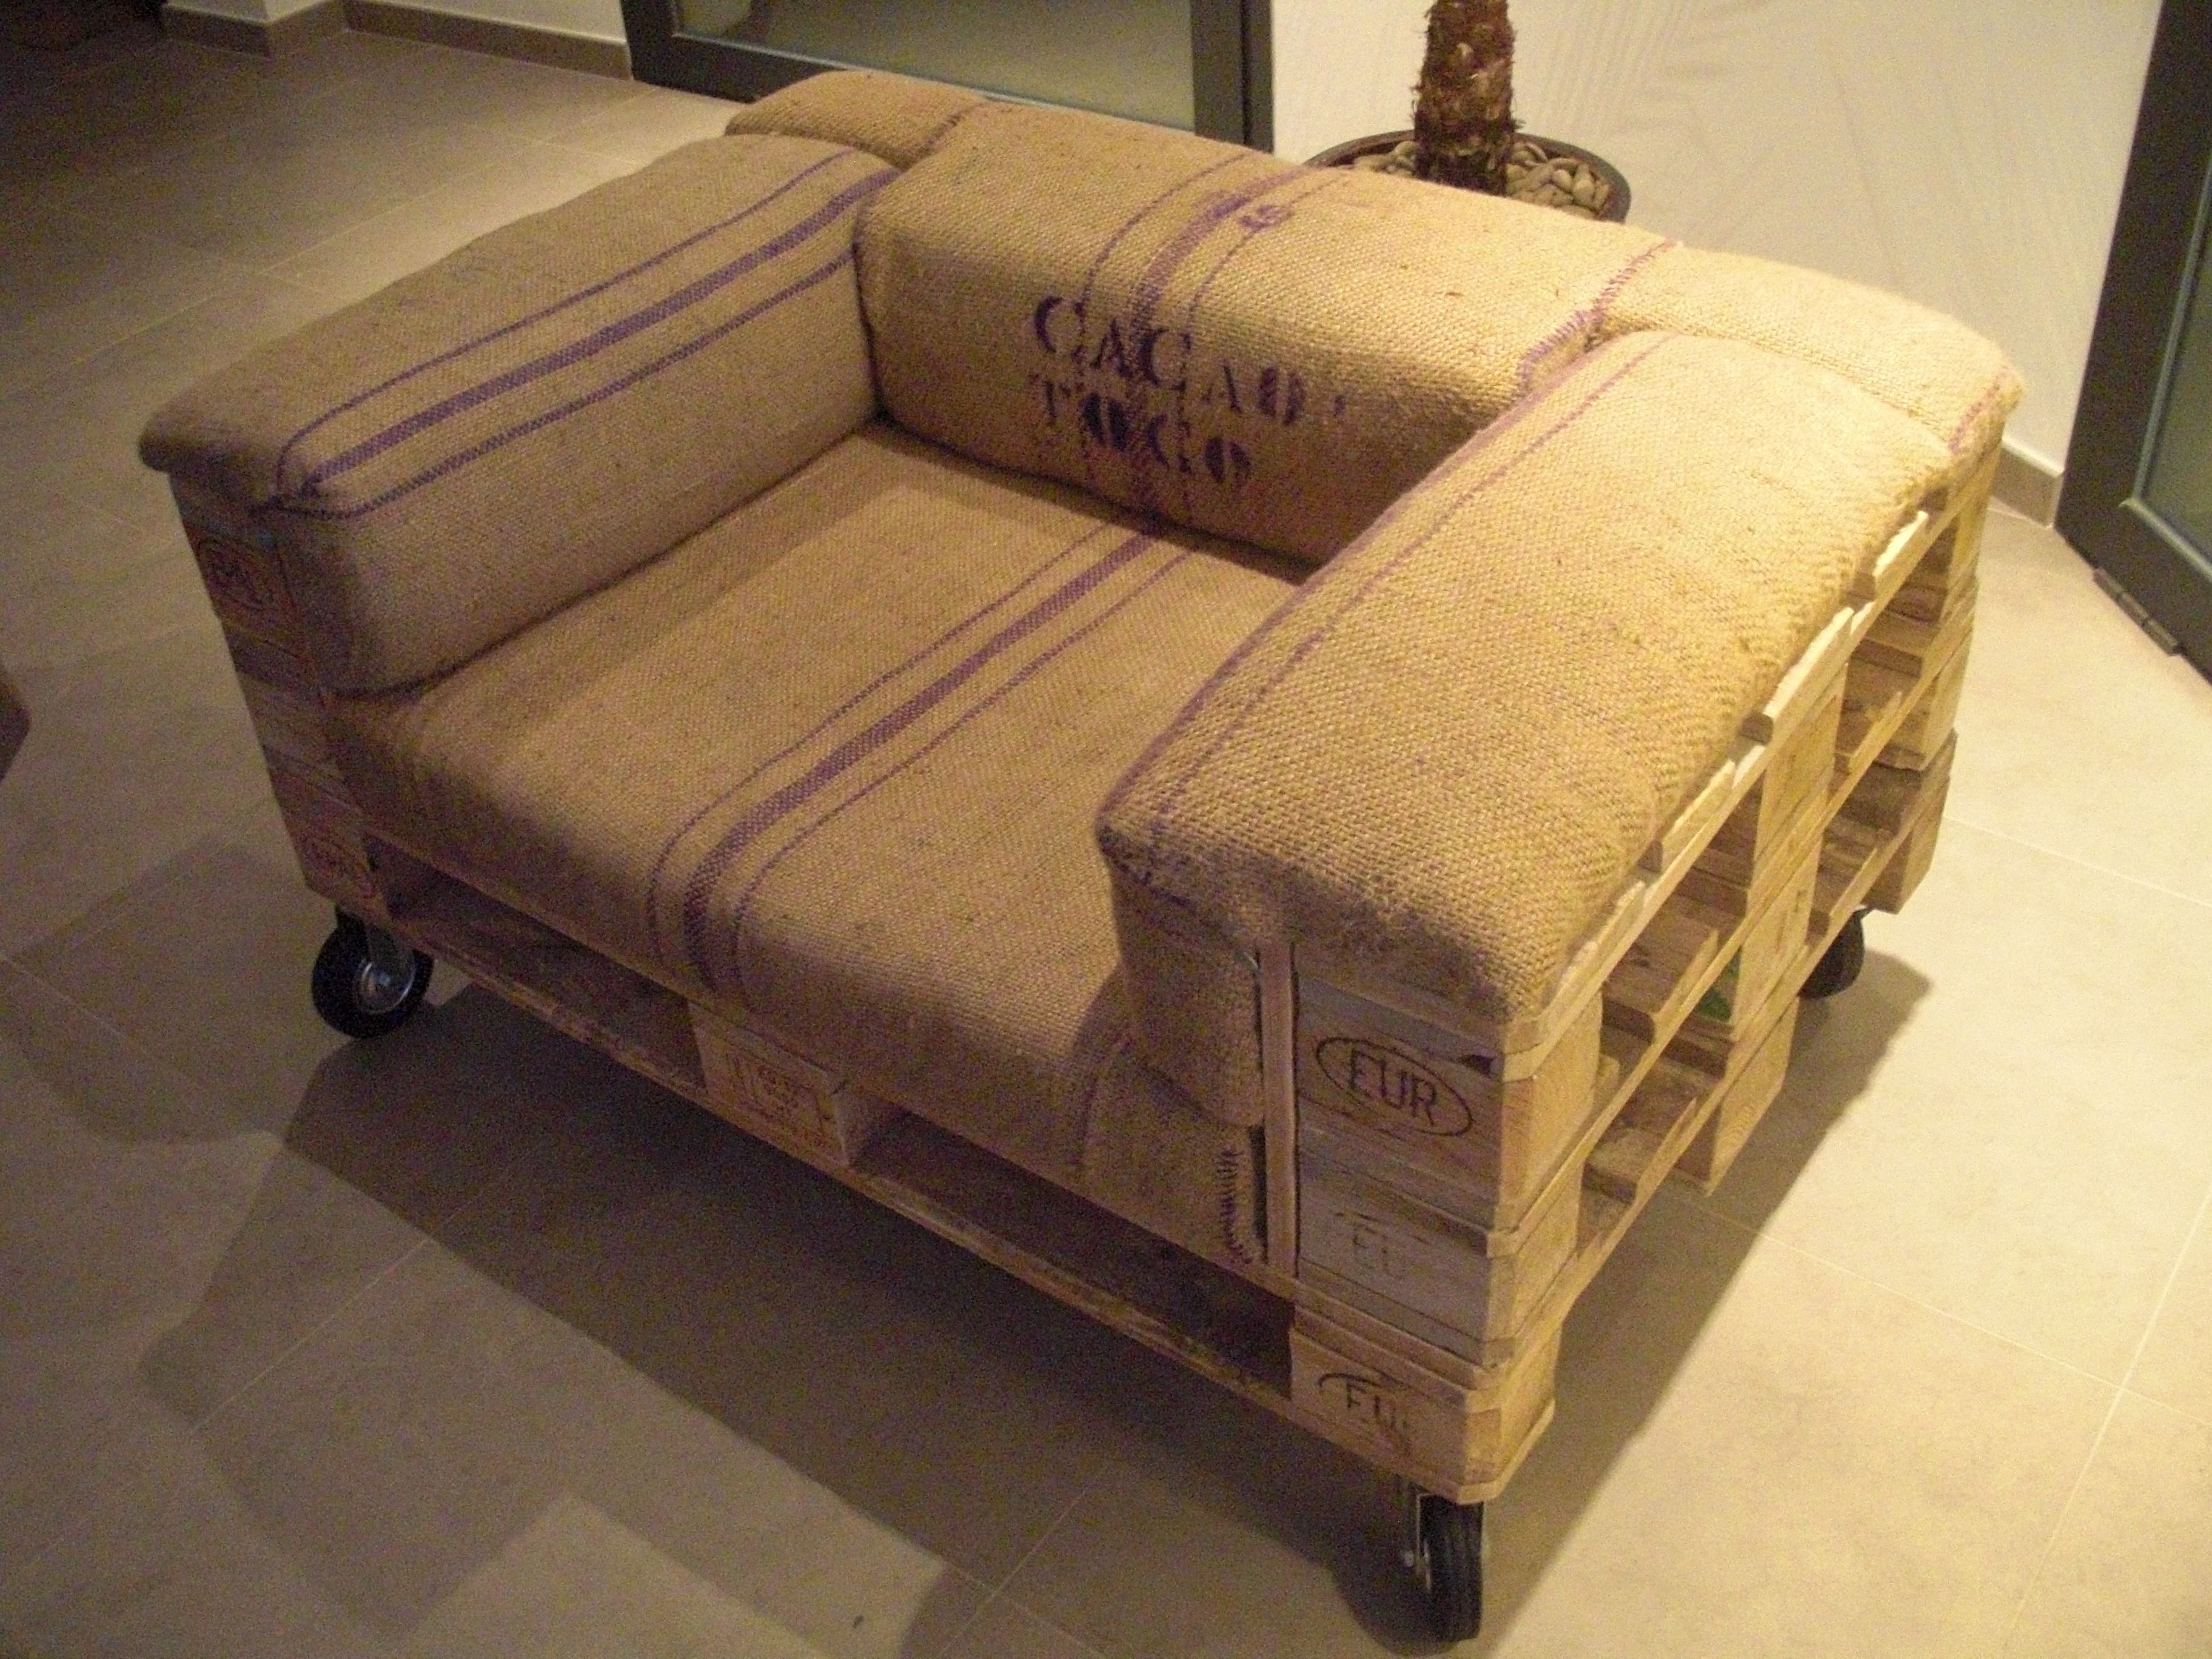 Pallet armchair - Pallet Armchair Made From Pallets And Upholstered With Grain Sacks My Take On The